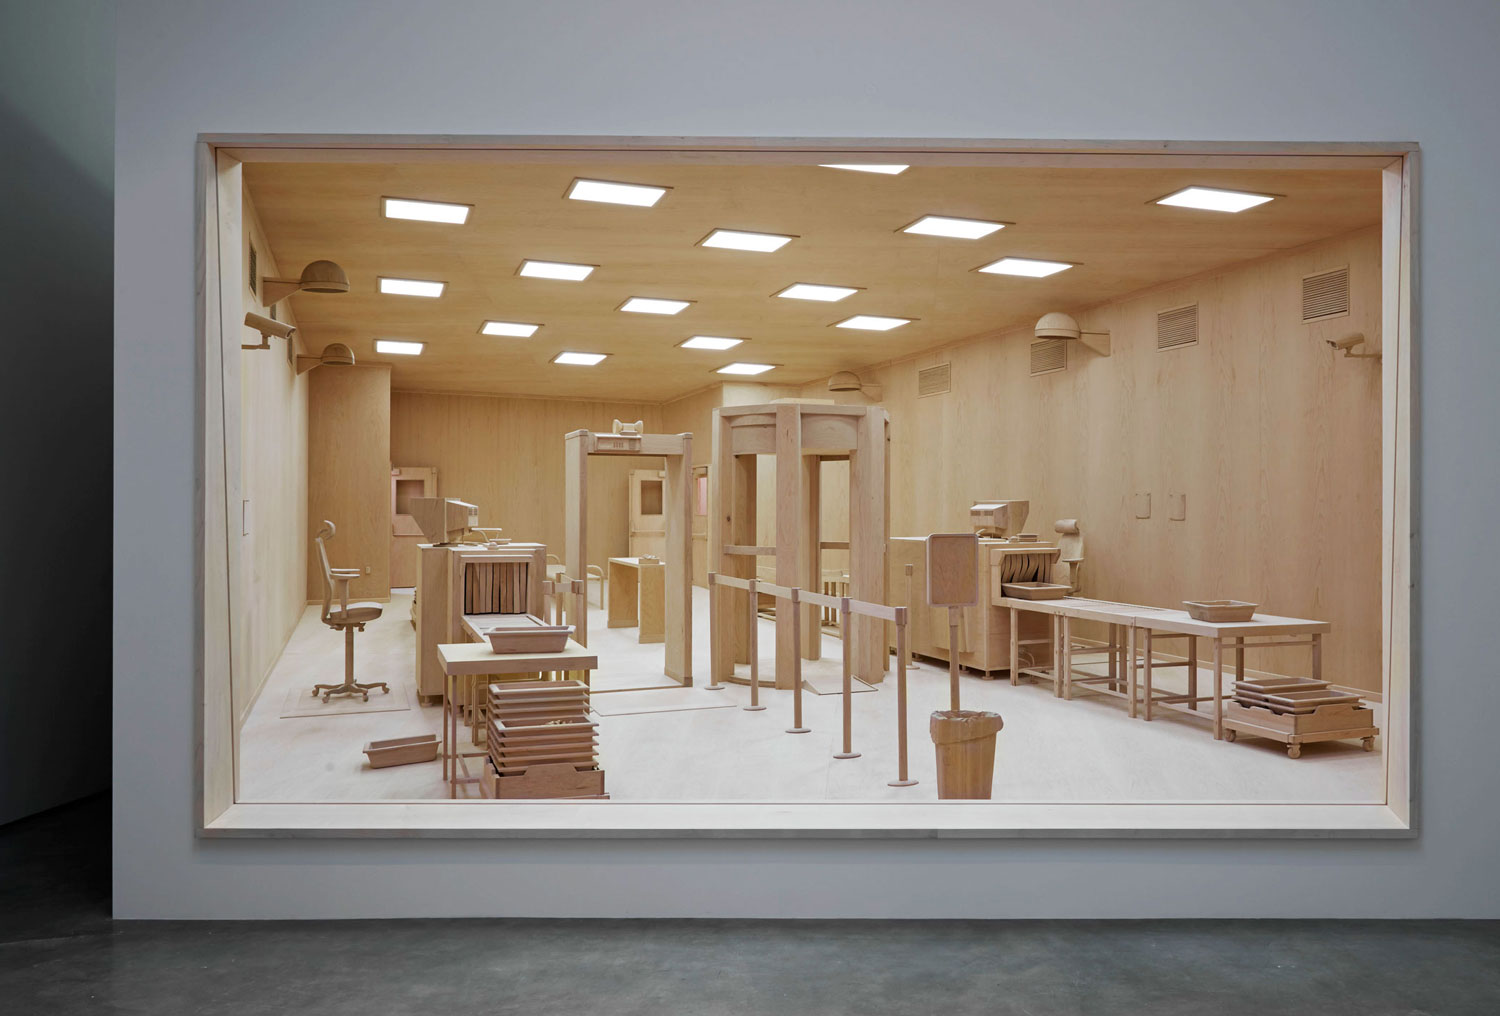 Denuded Lens by Roxy Paine | Yellowtrace